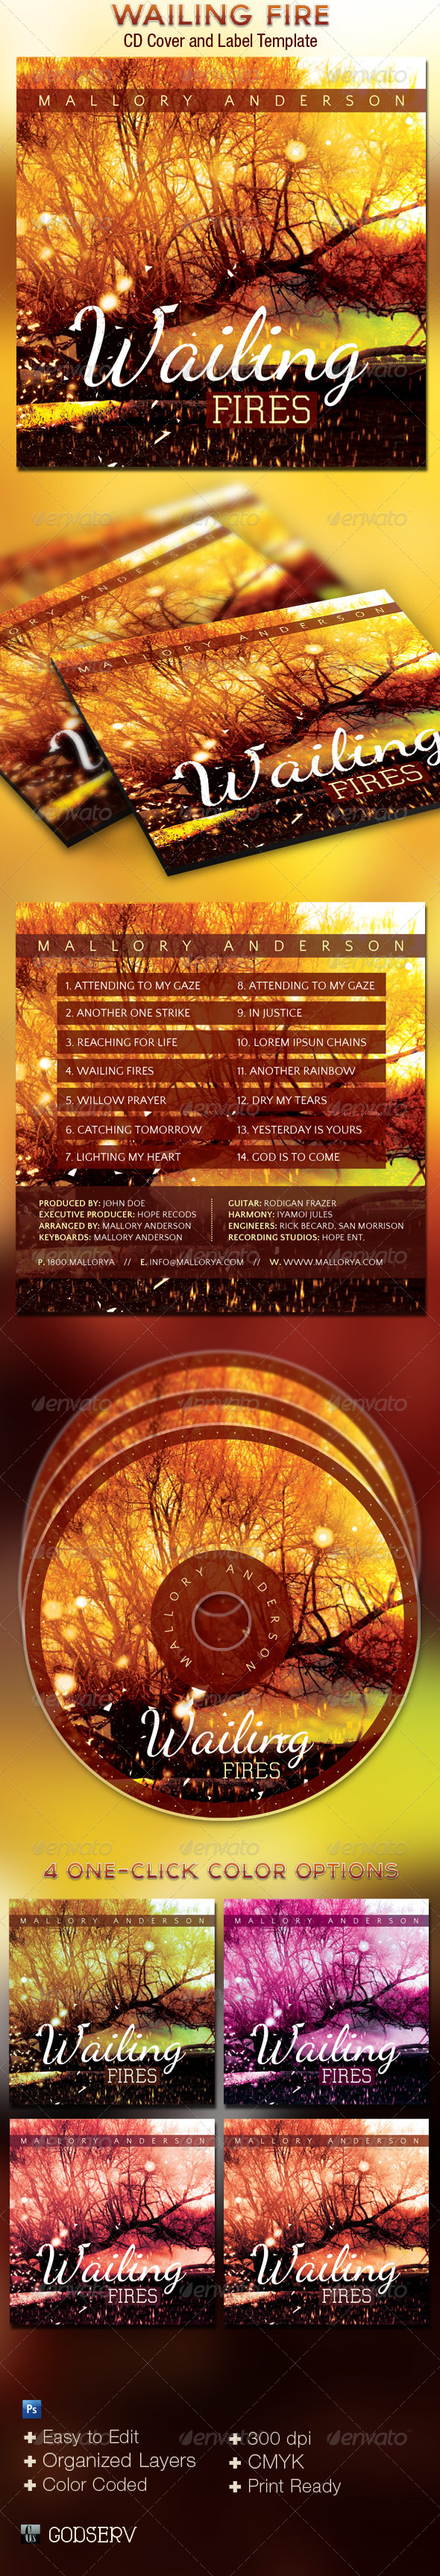 Wailing Fire CD Cover Art Template